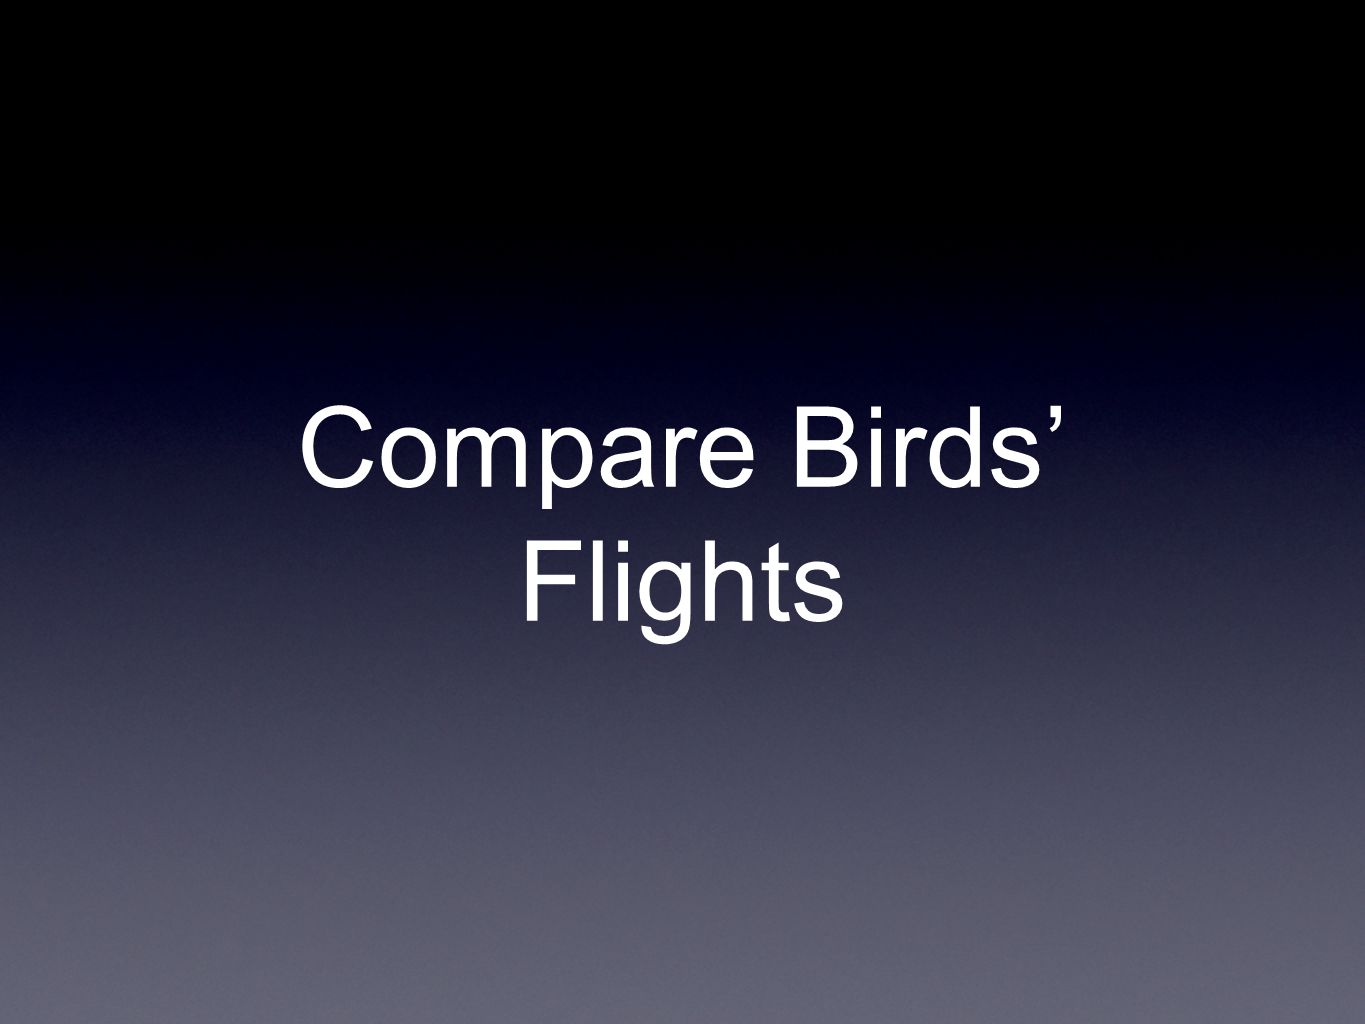 Compare Birds Flights